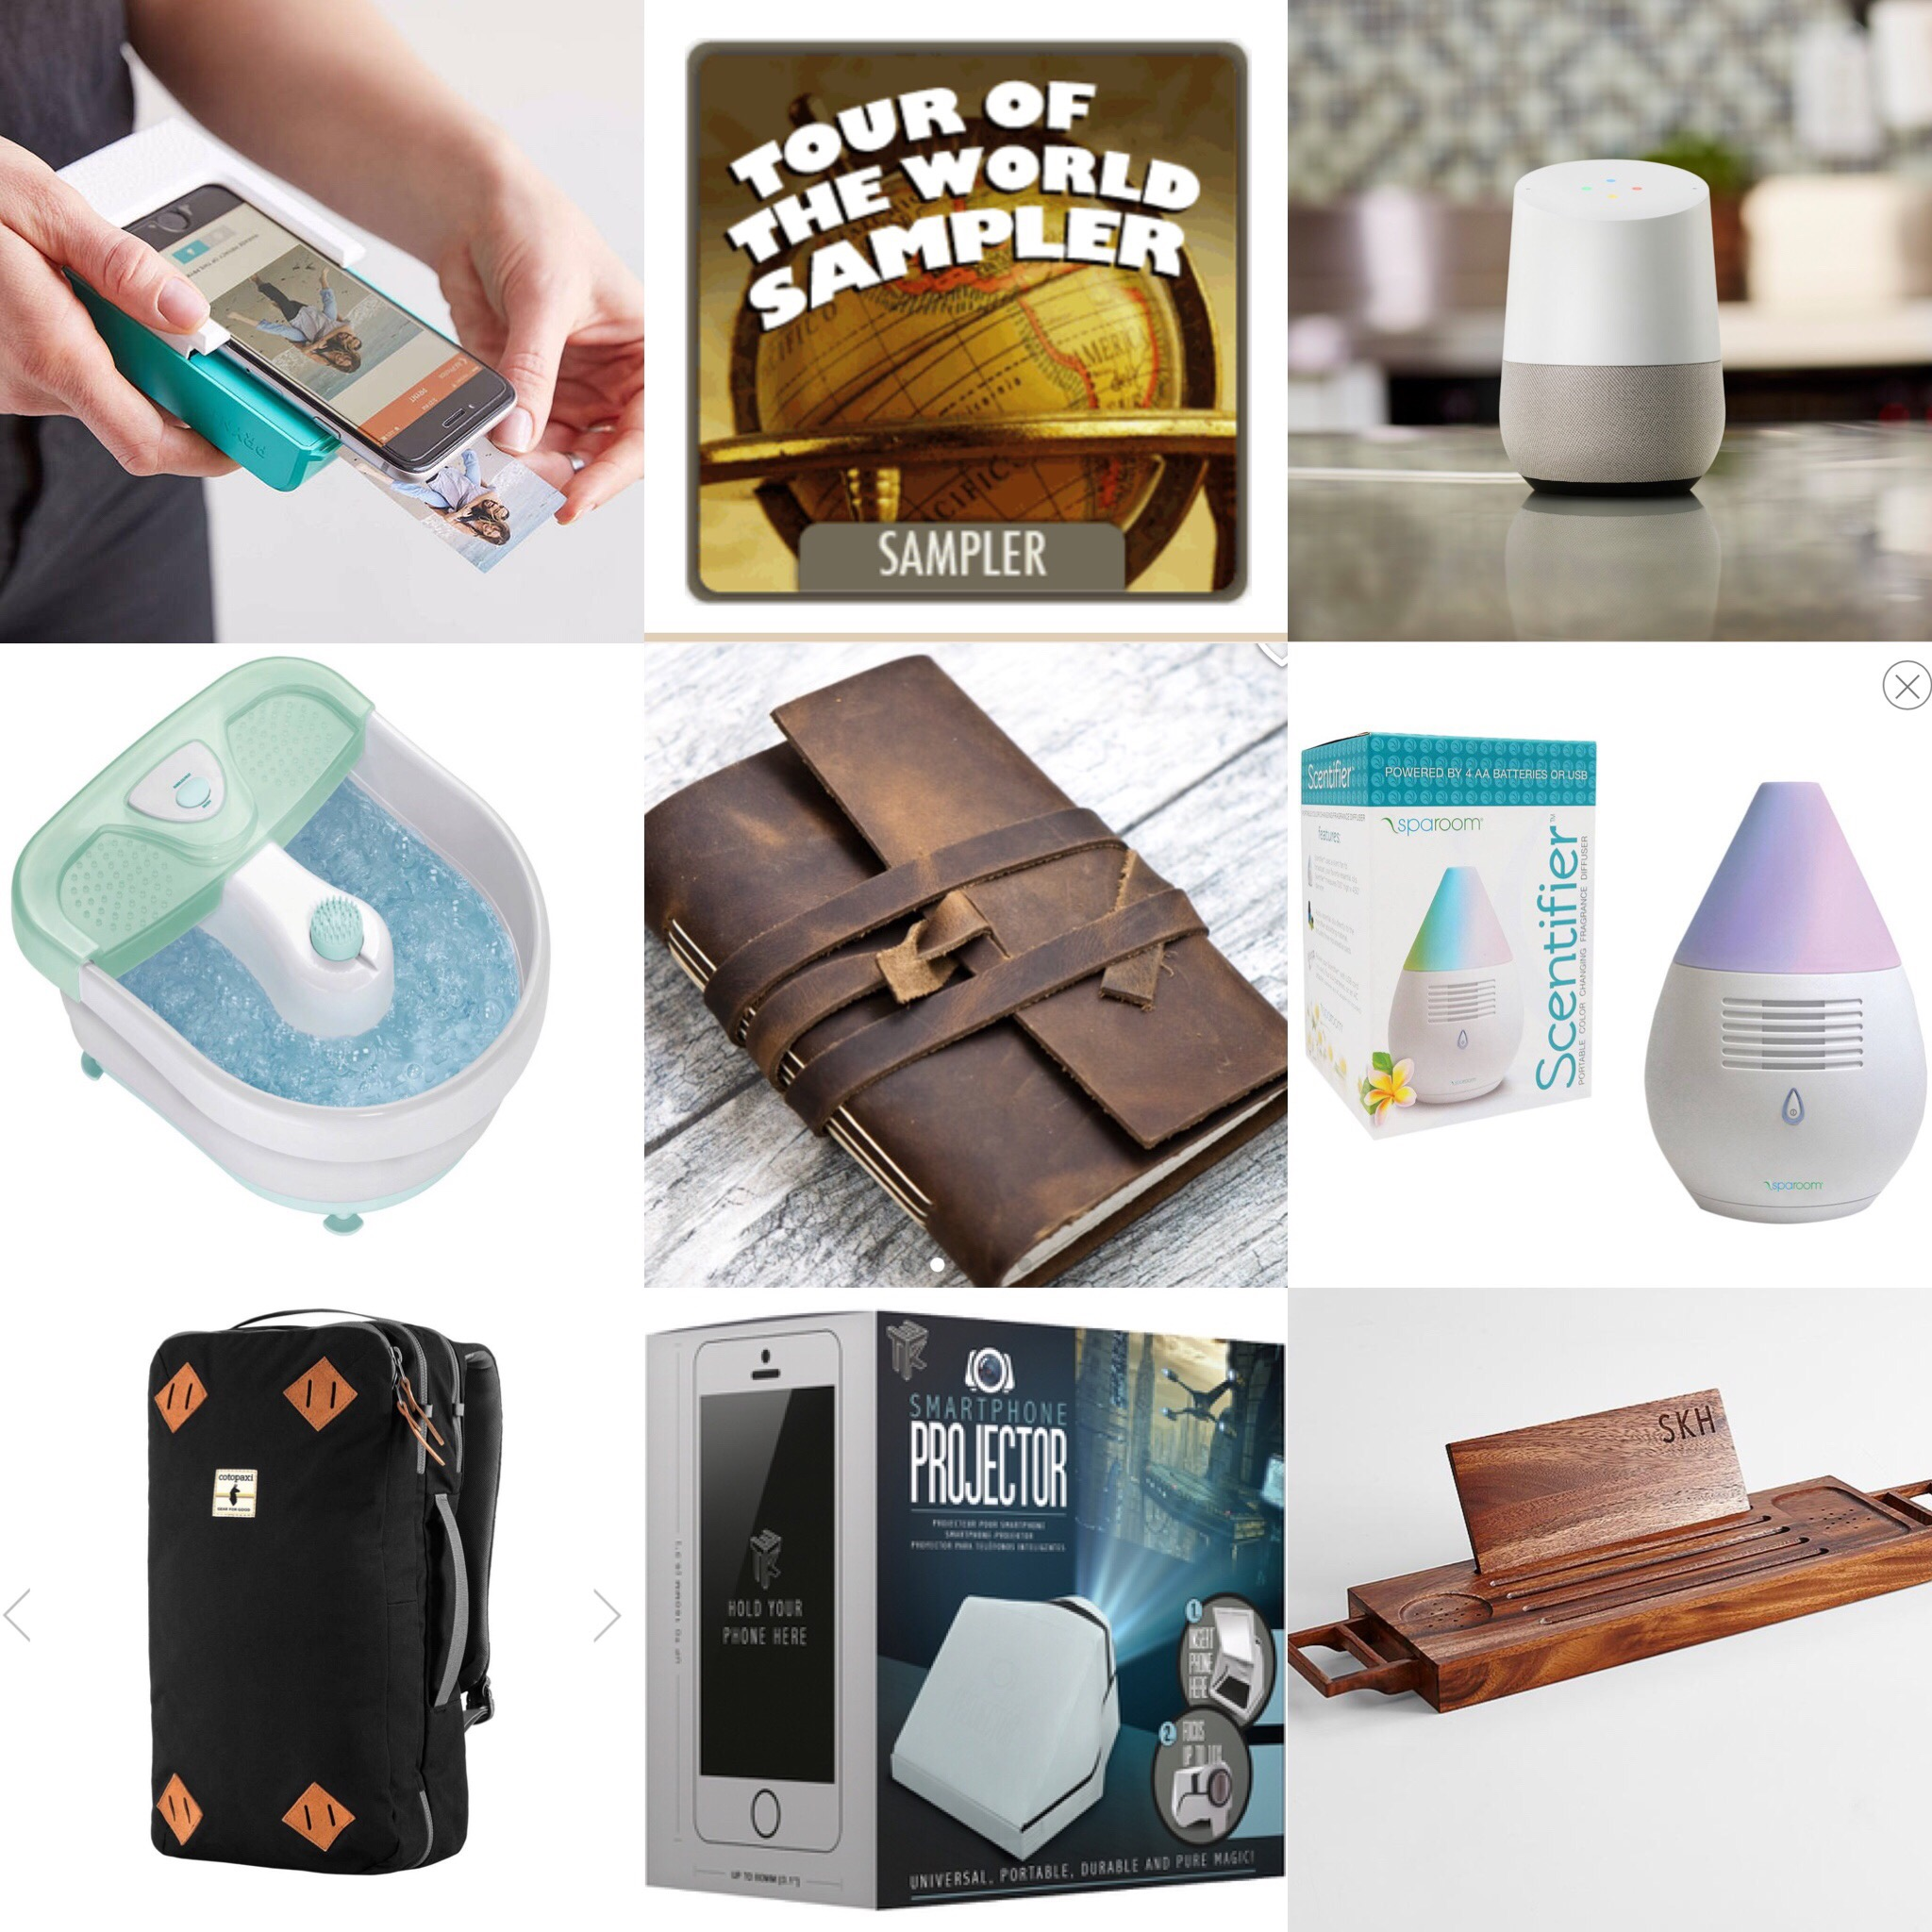 9 Unisex gift ideas for the holidays – The World According to Viri